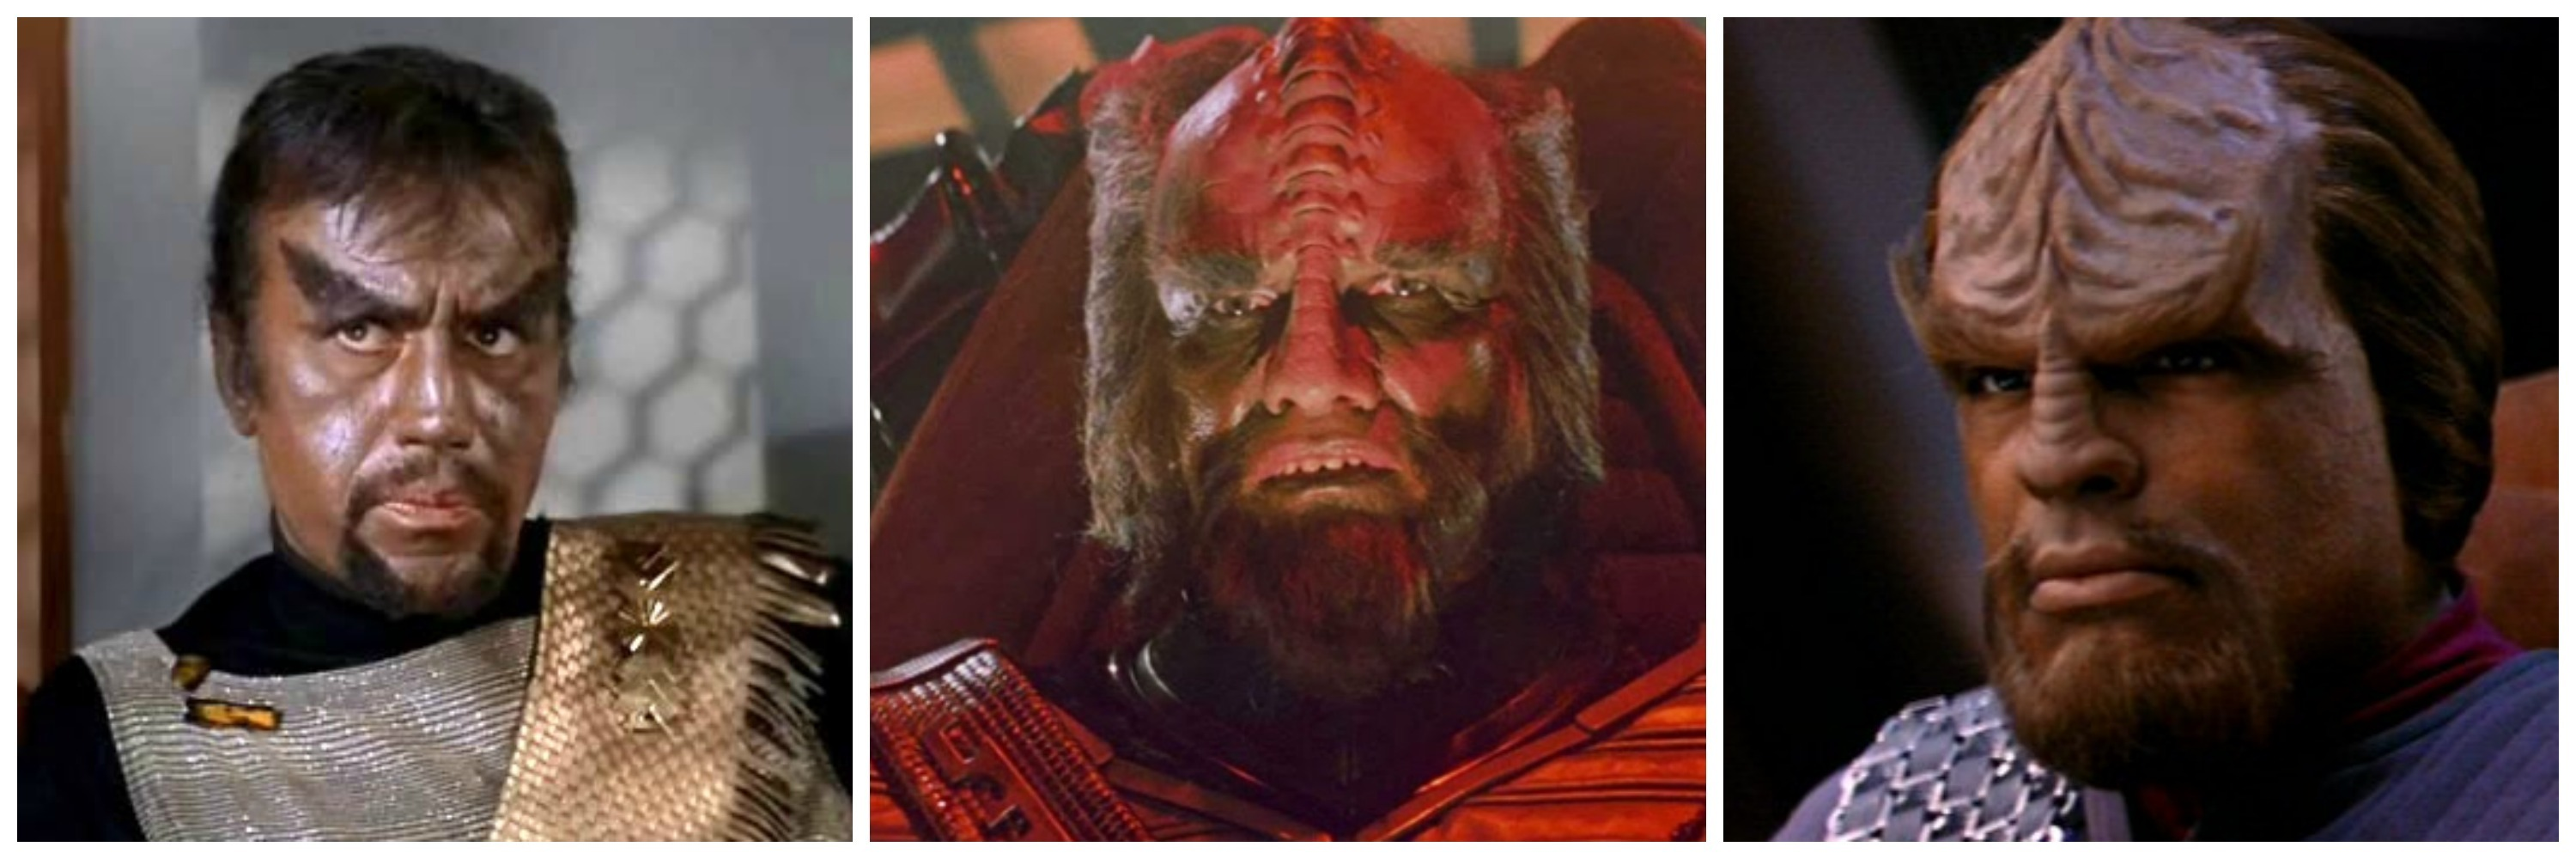 Klingons in chronological order: Kang in the original series, a Klingon Captain in 'Star Trek: The Motion Picture' and Worf. You know Worf. He's your favorite Klingon.